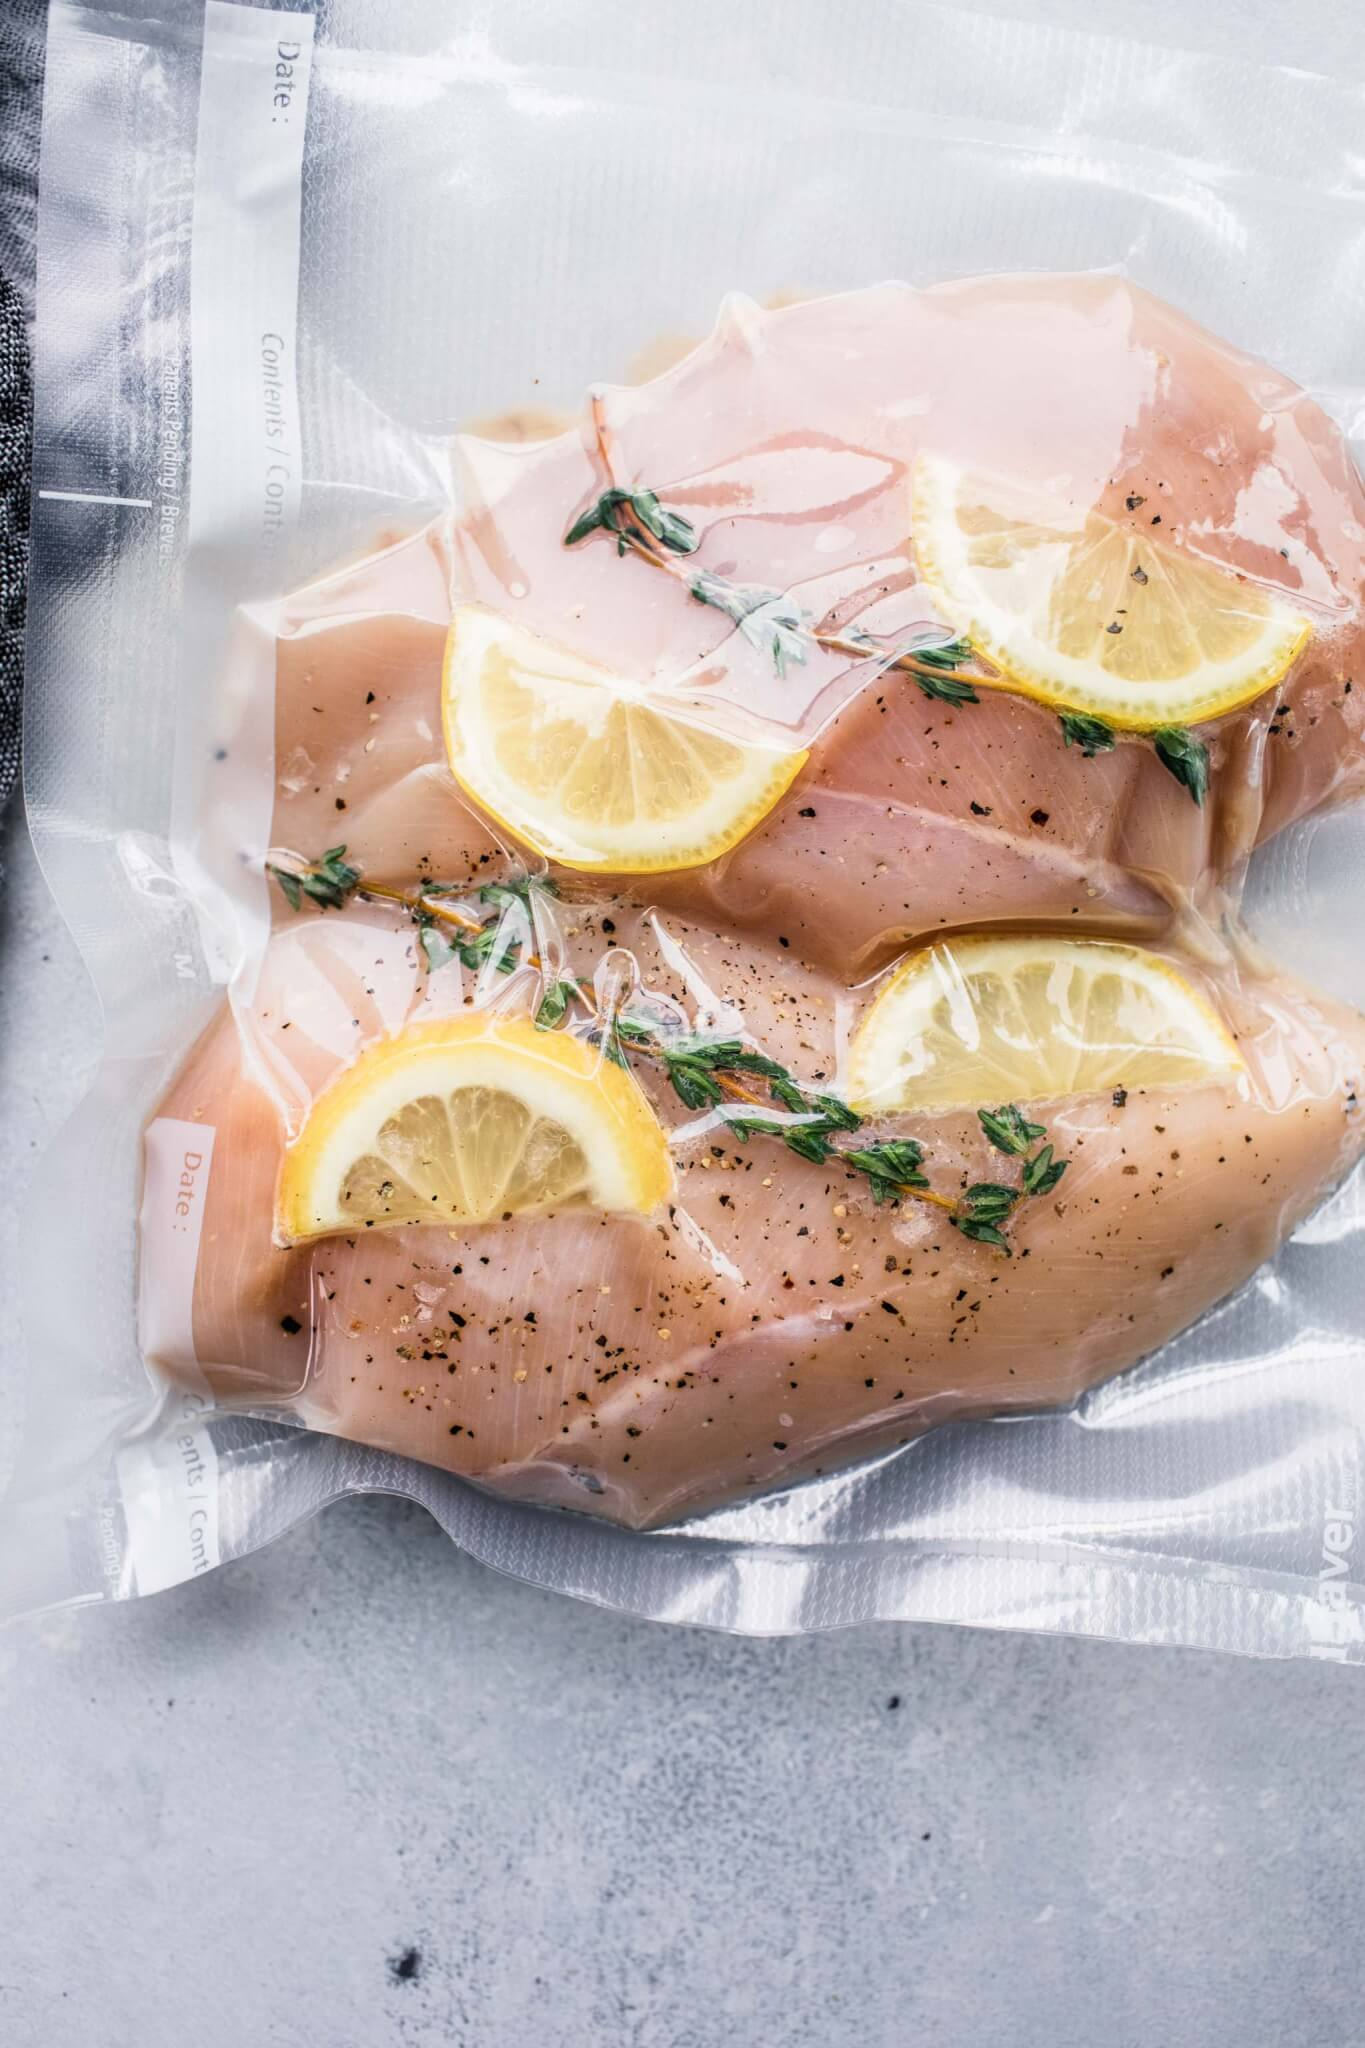 Two chicken breasts in vacuum seal bag with lemons and herbs.